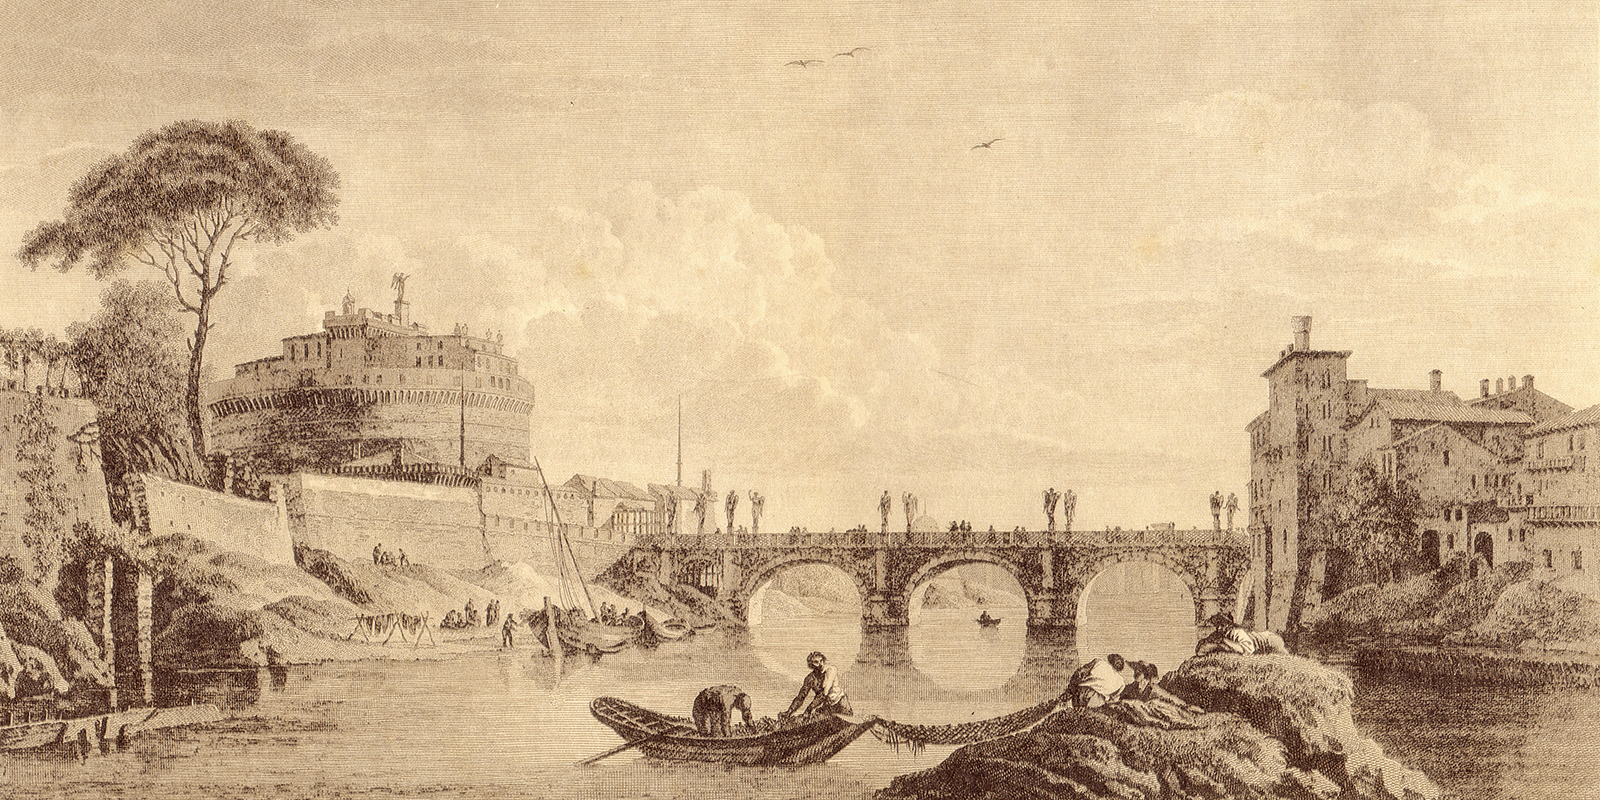 Antique view of Rome, Italy, with the Vatican and the San Angelo castle. Engraving by Giovanni Barberi, published in the book Veduti di Roma (1809).